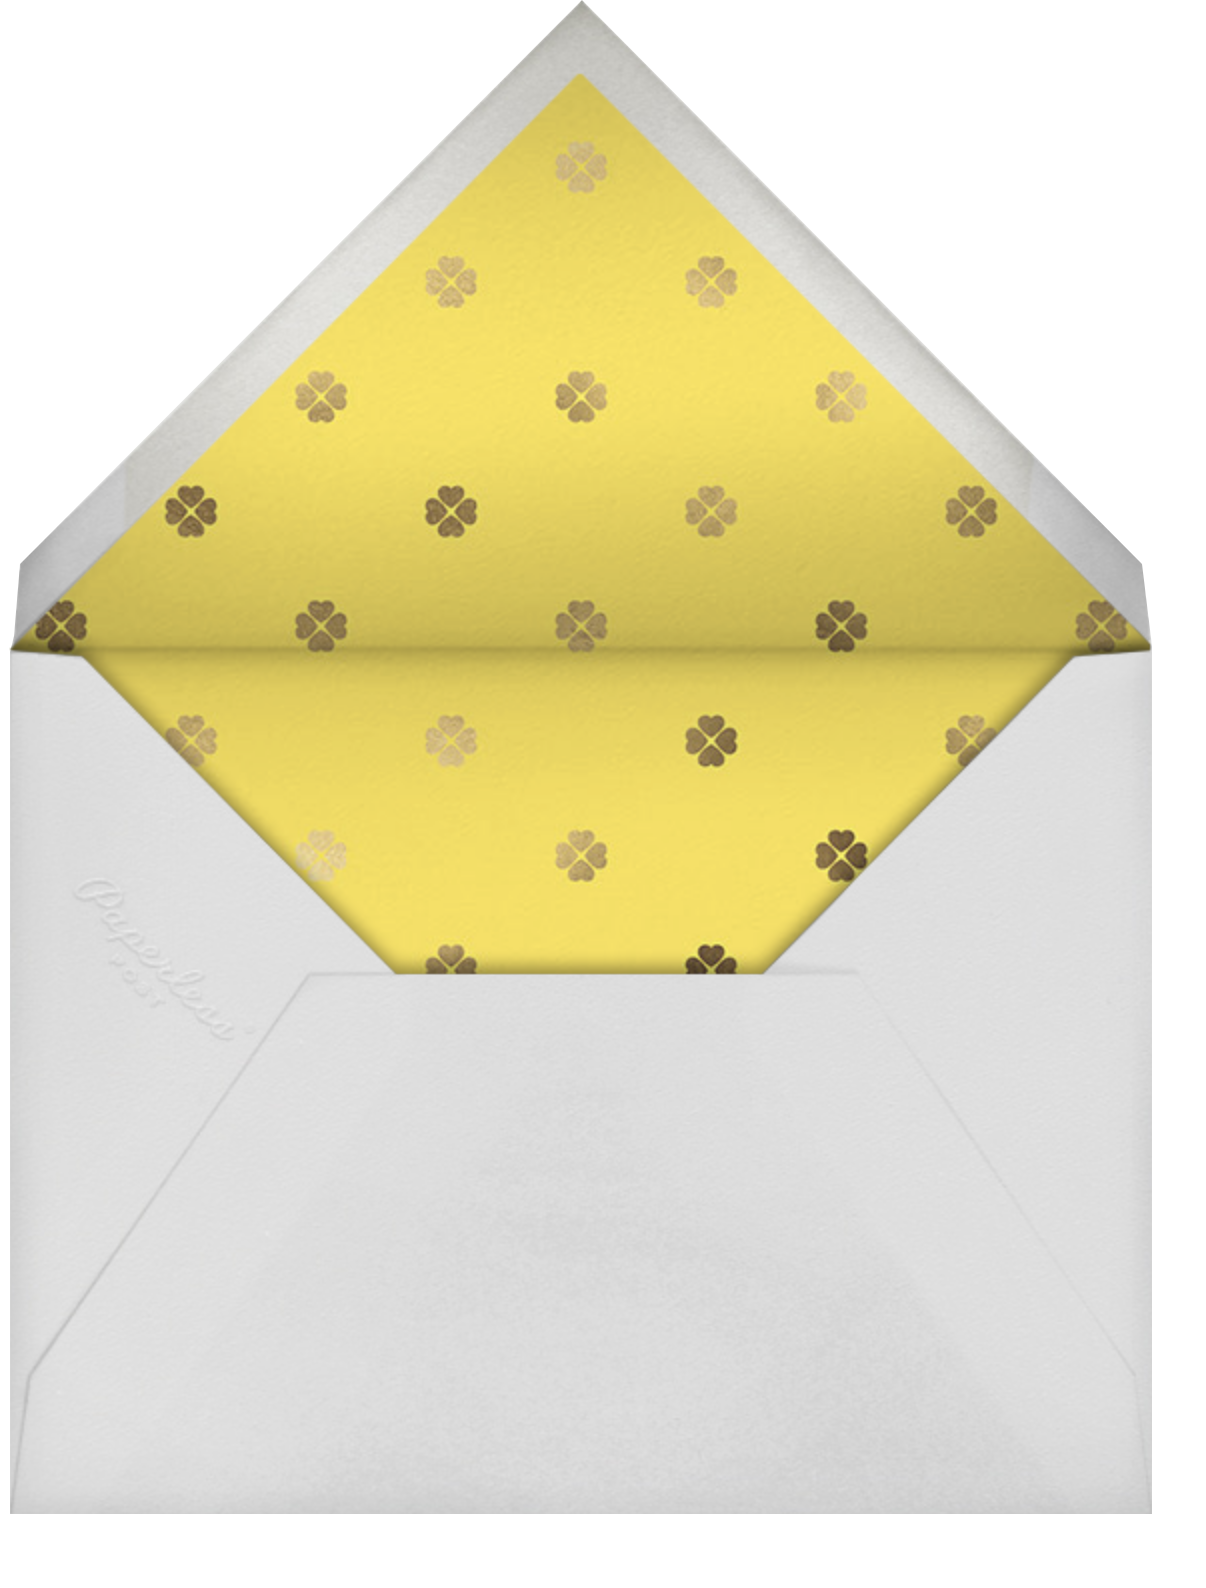 Colorblocked Stripes - Yellow/Pavlova - kate spade new york - Save the date - envelope back